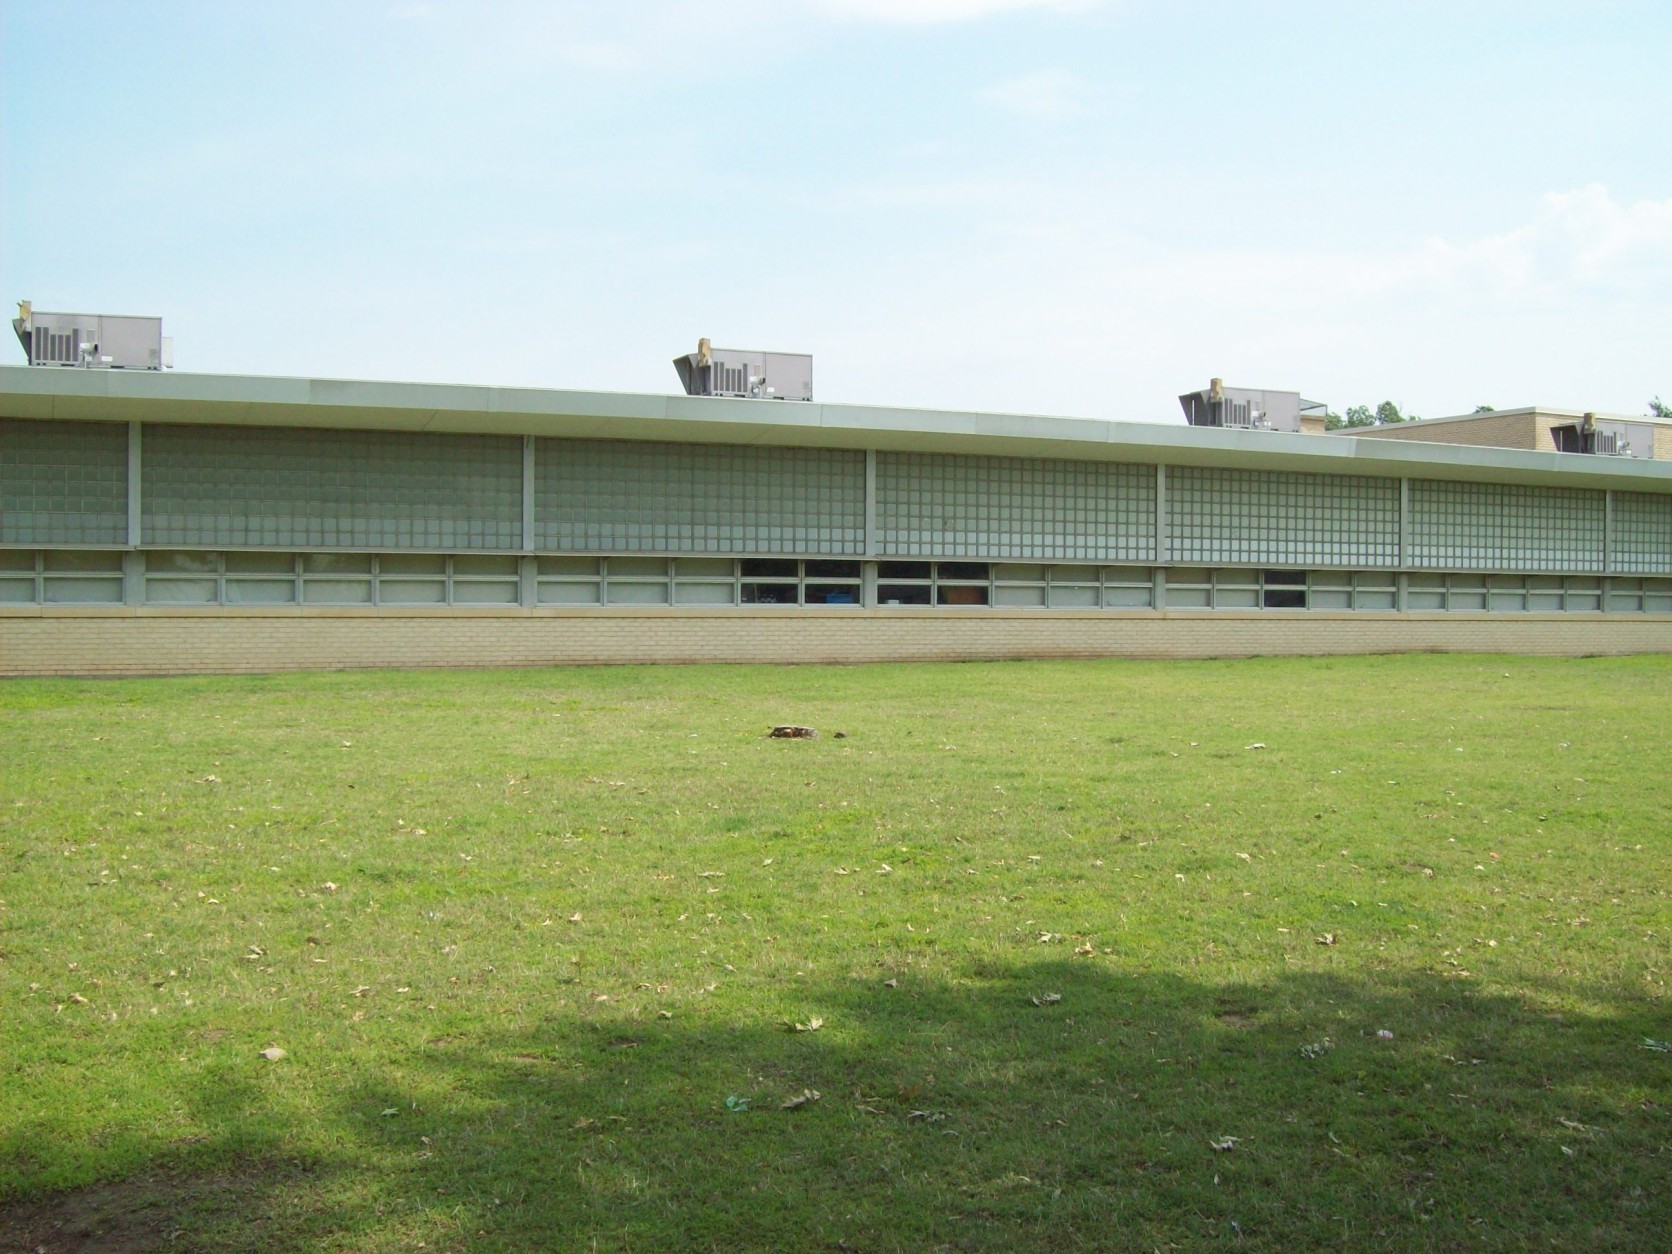 Tony Goetz Elementary after the blinds were installed (Muskogee, 2010)